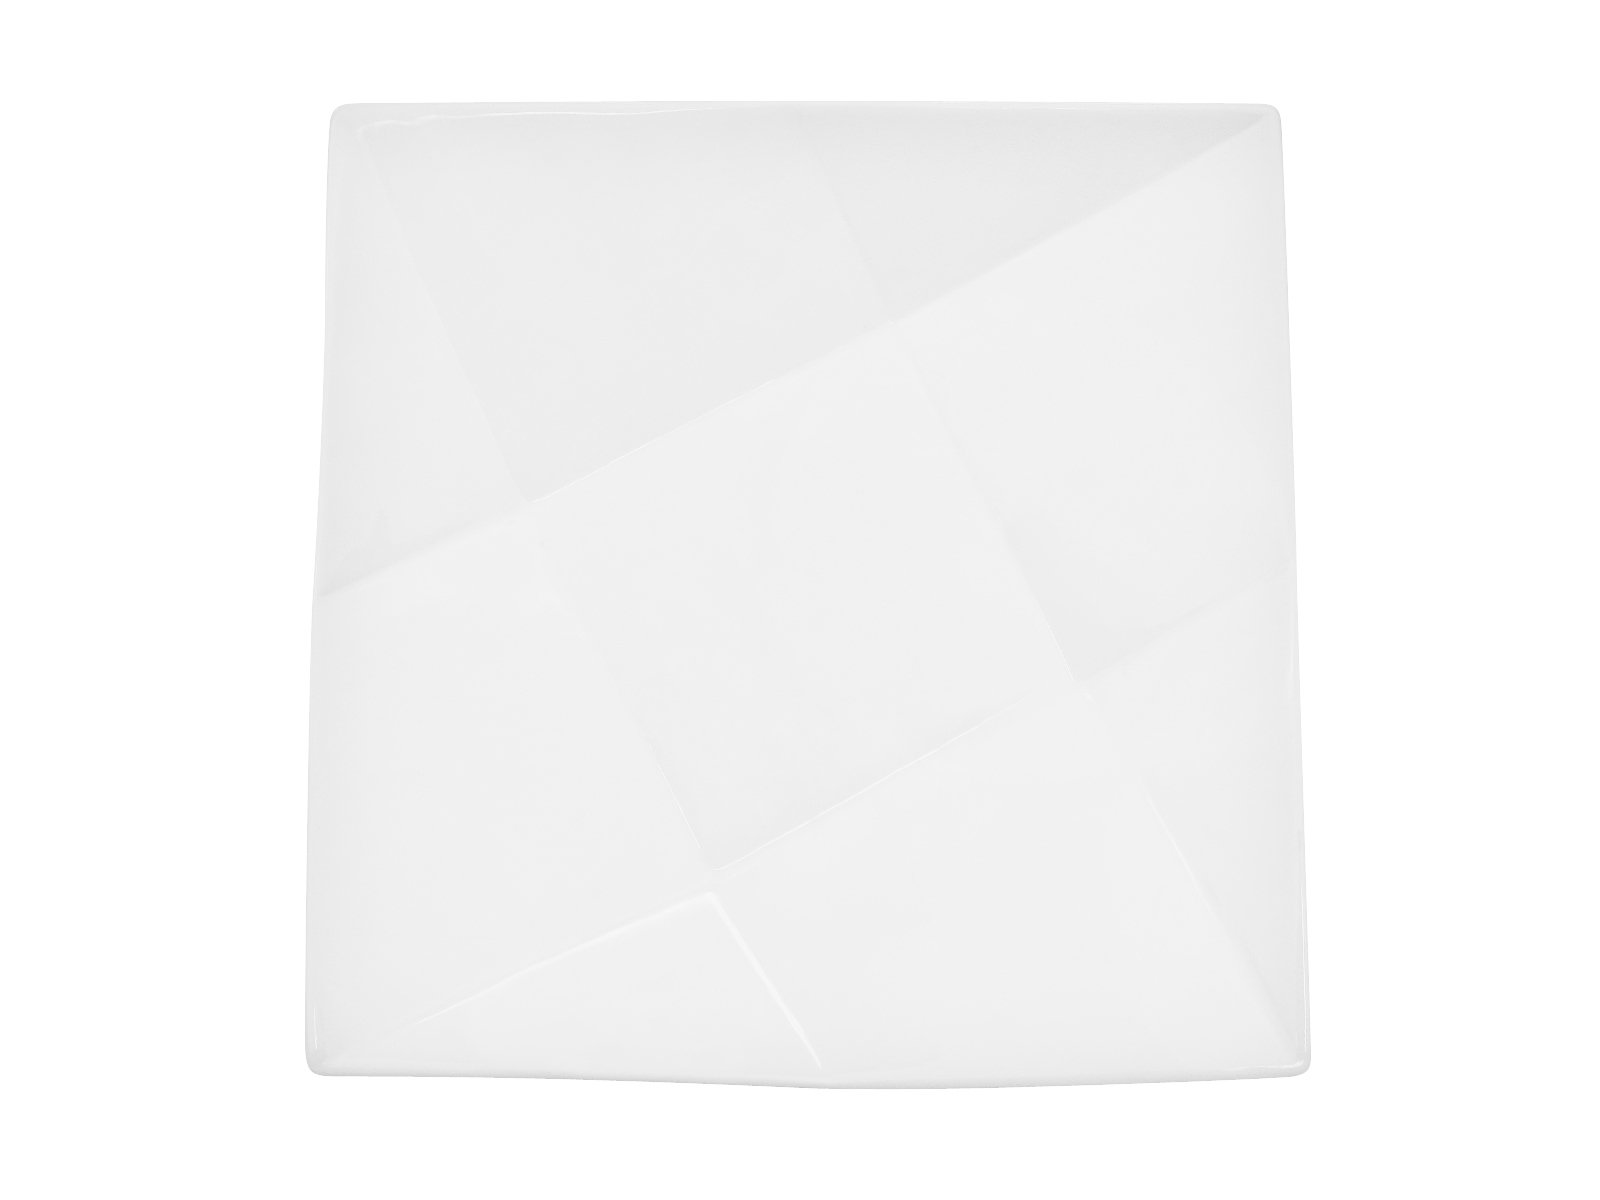 CAC China QZT-7 Crystal 7-Inch Super White Porcelain Square Plate, Box of 36